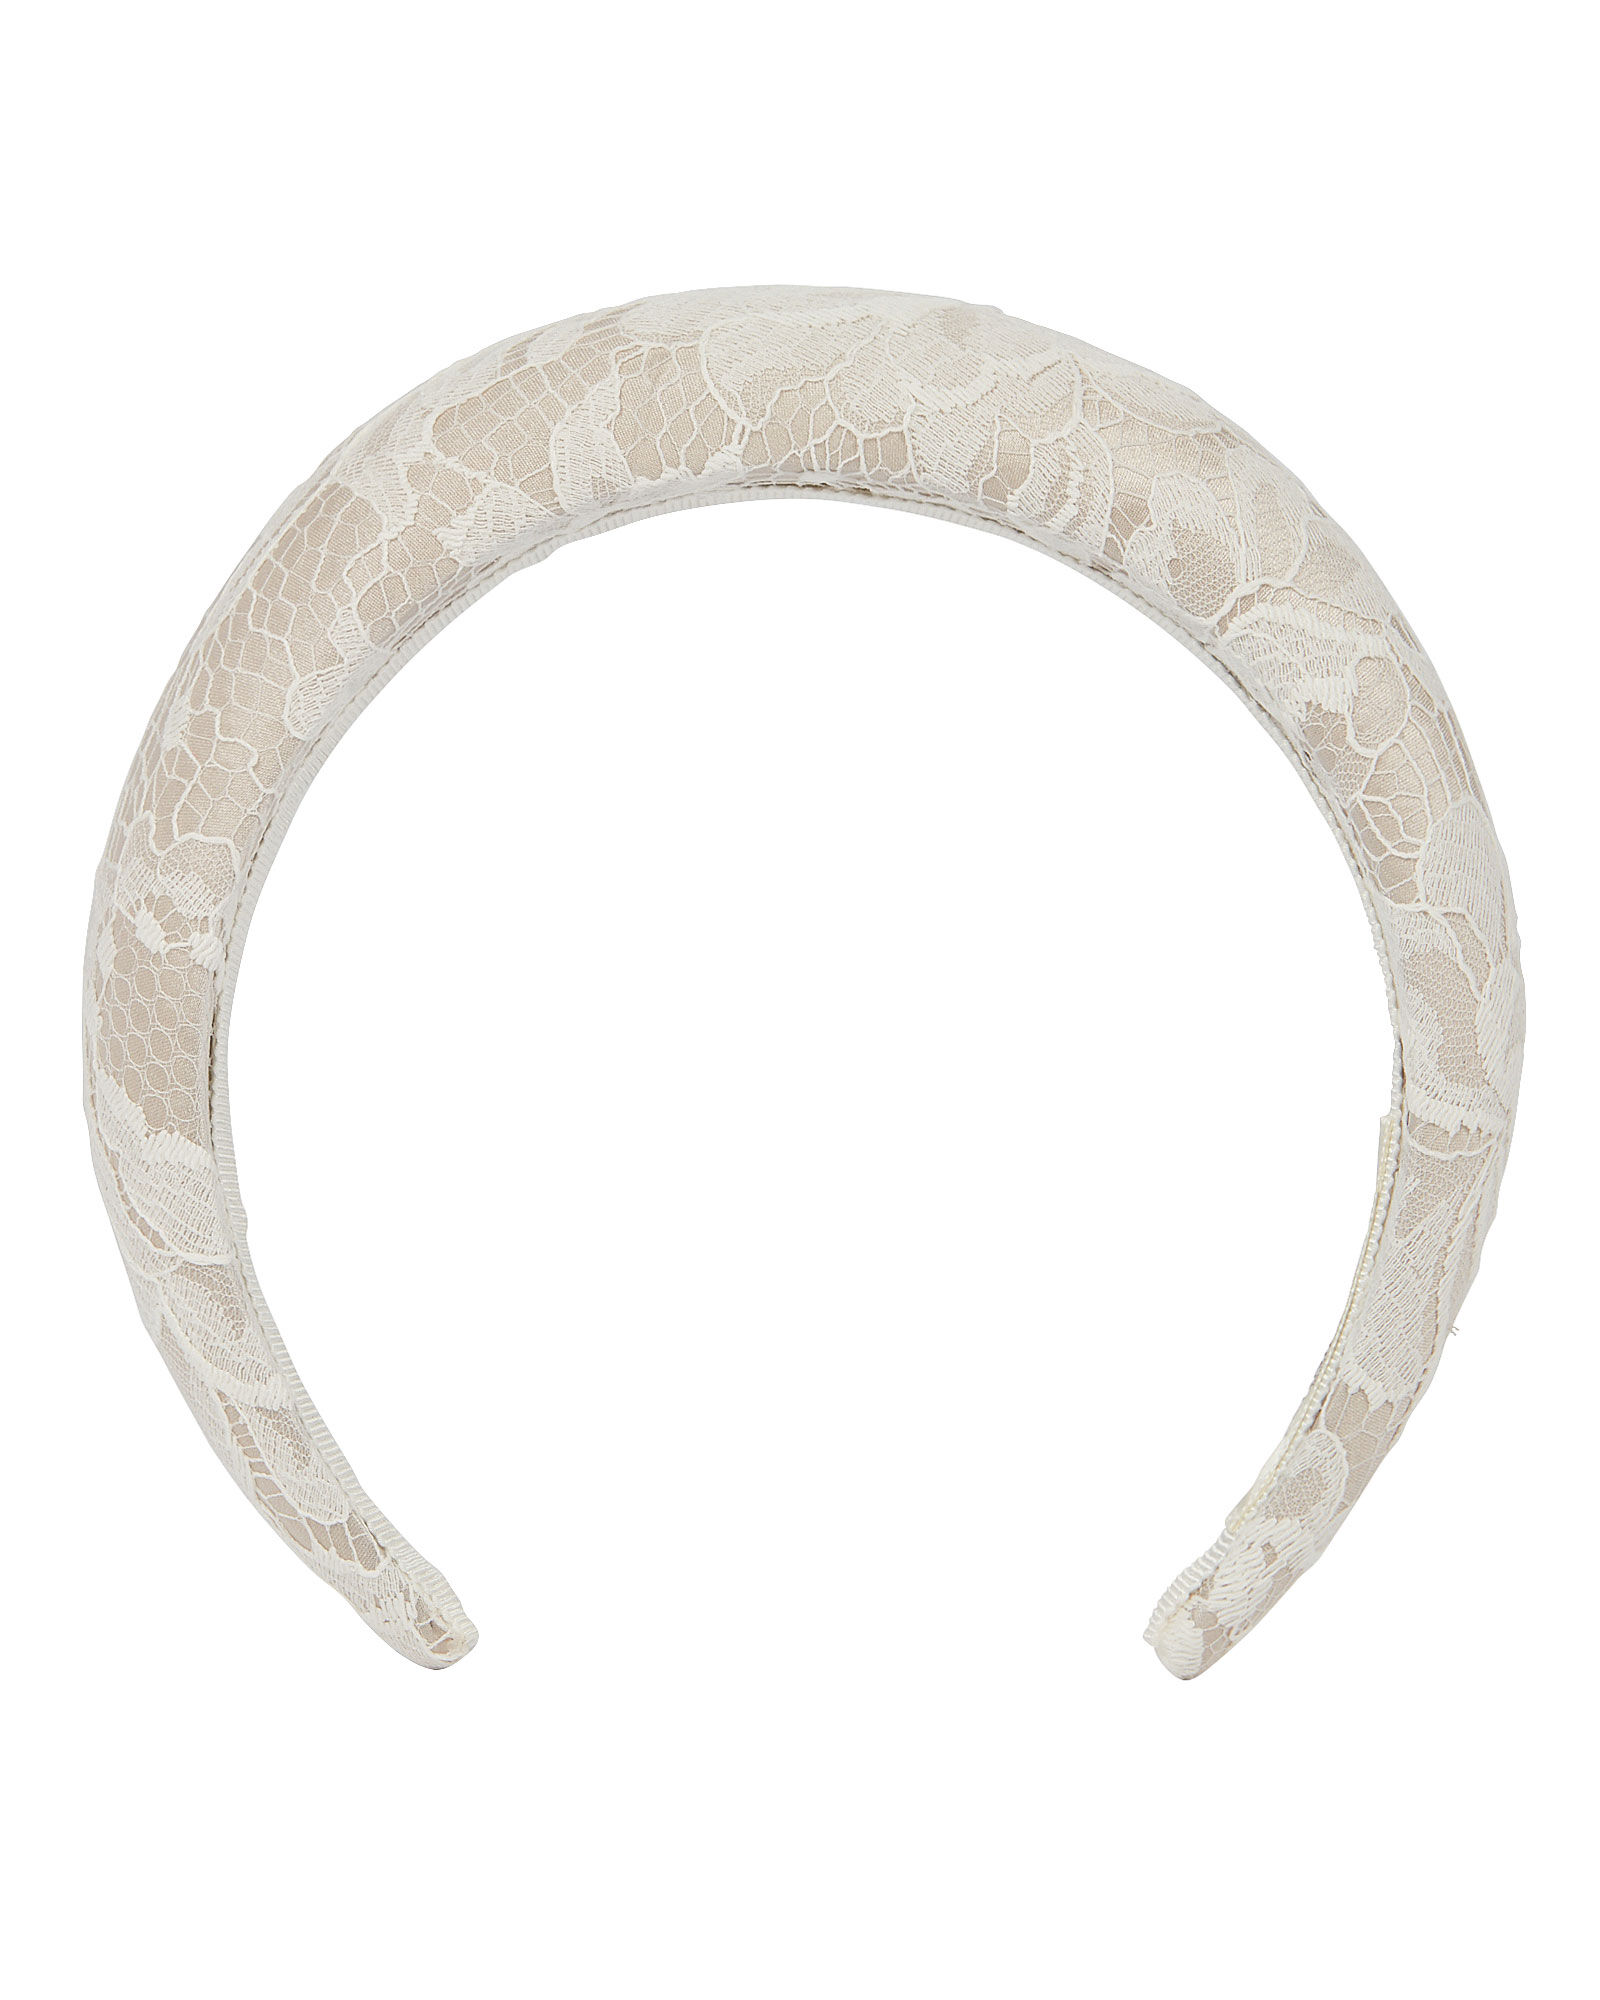 Countess Lace Charmeuse Headband, IVORY, hi-res